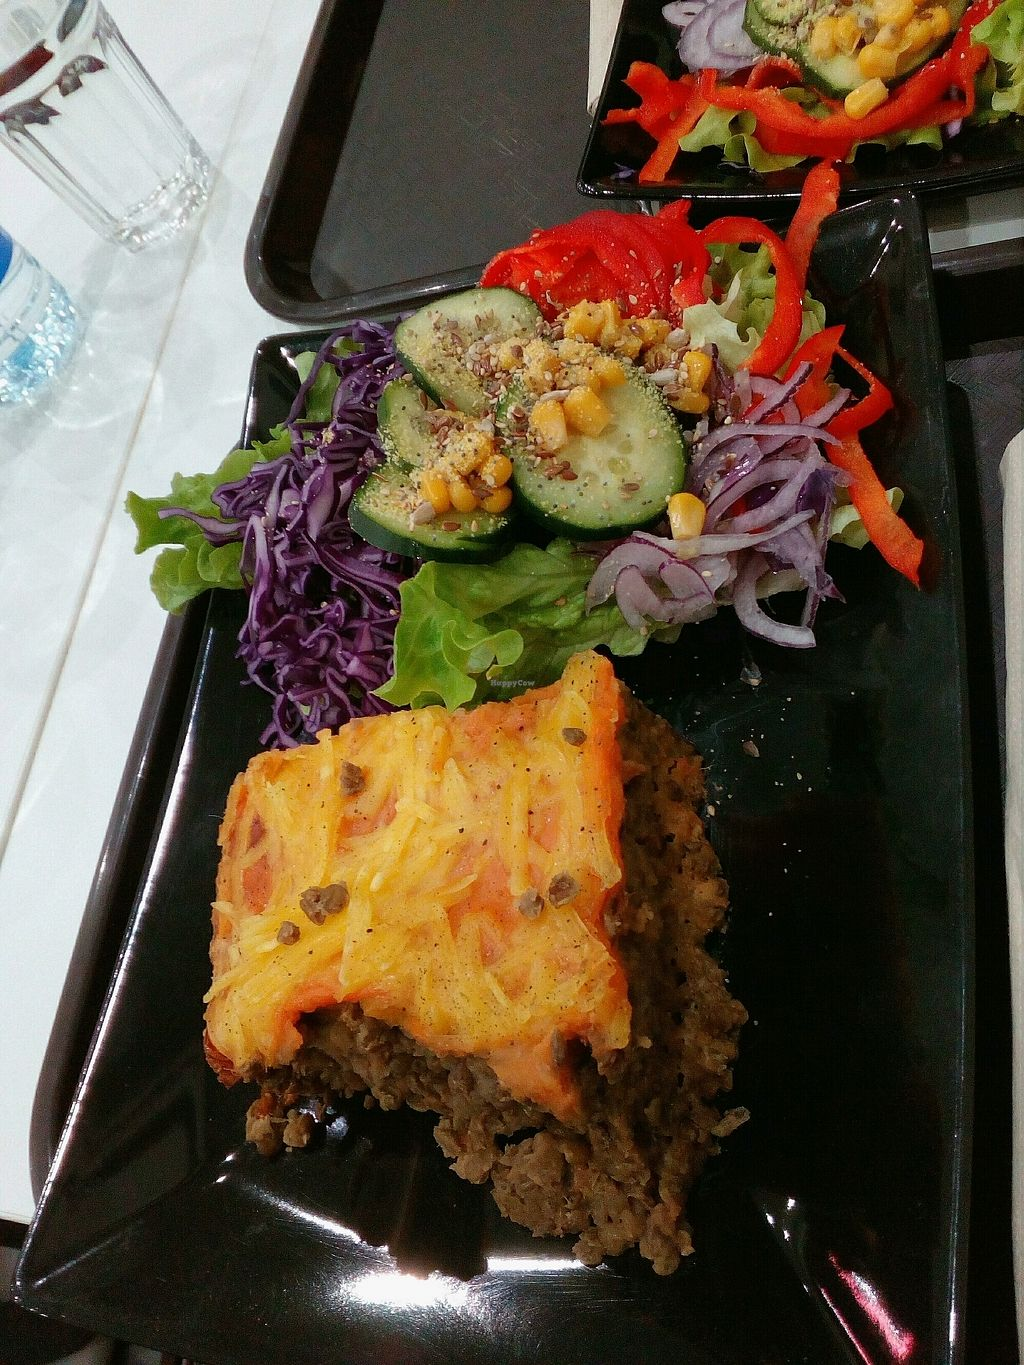 """Photo of Veggie Corner  by <a href=""""/members/profile/wyrd"""">wyrd</a> <br/>lentils and salad <br/> December 14, 2017  - <a href='/contact/abuse/image/90289/335492'>Report</a>"""